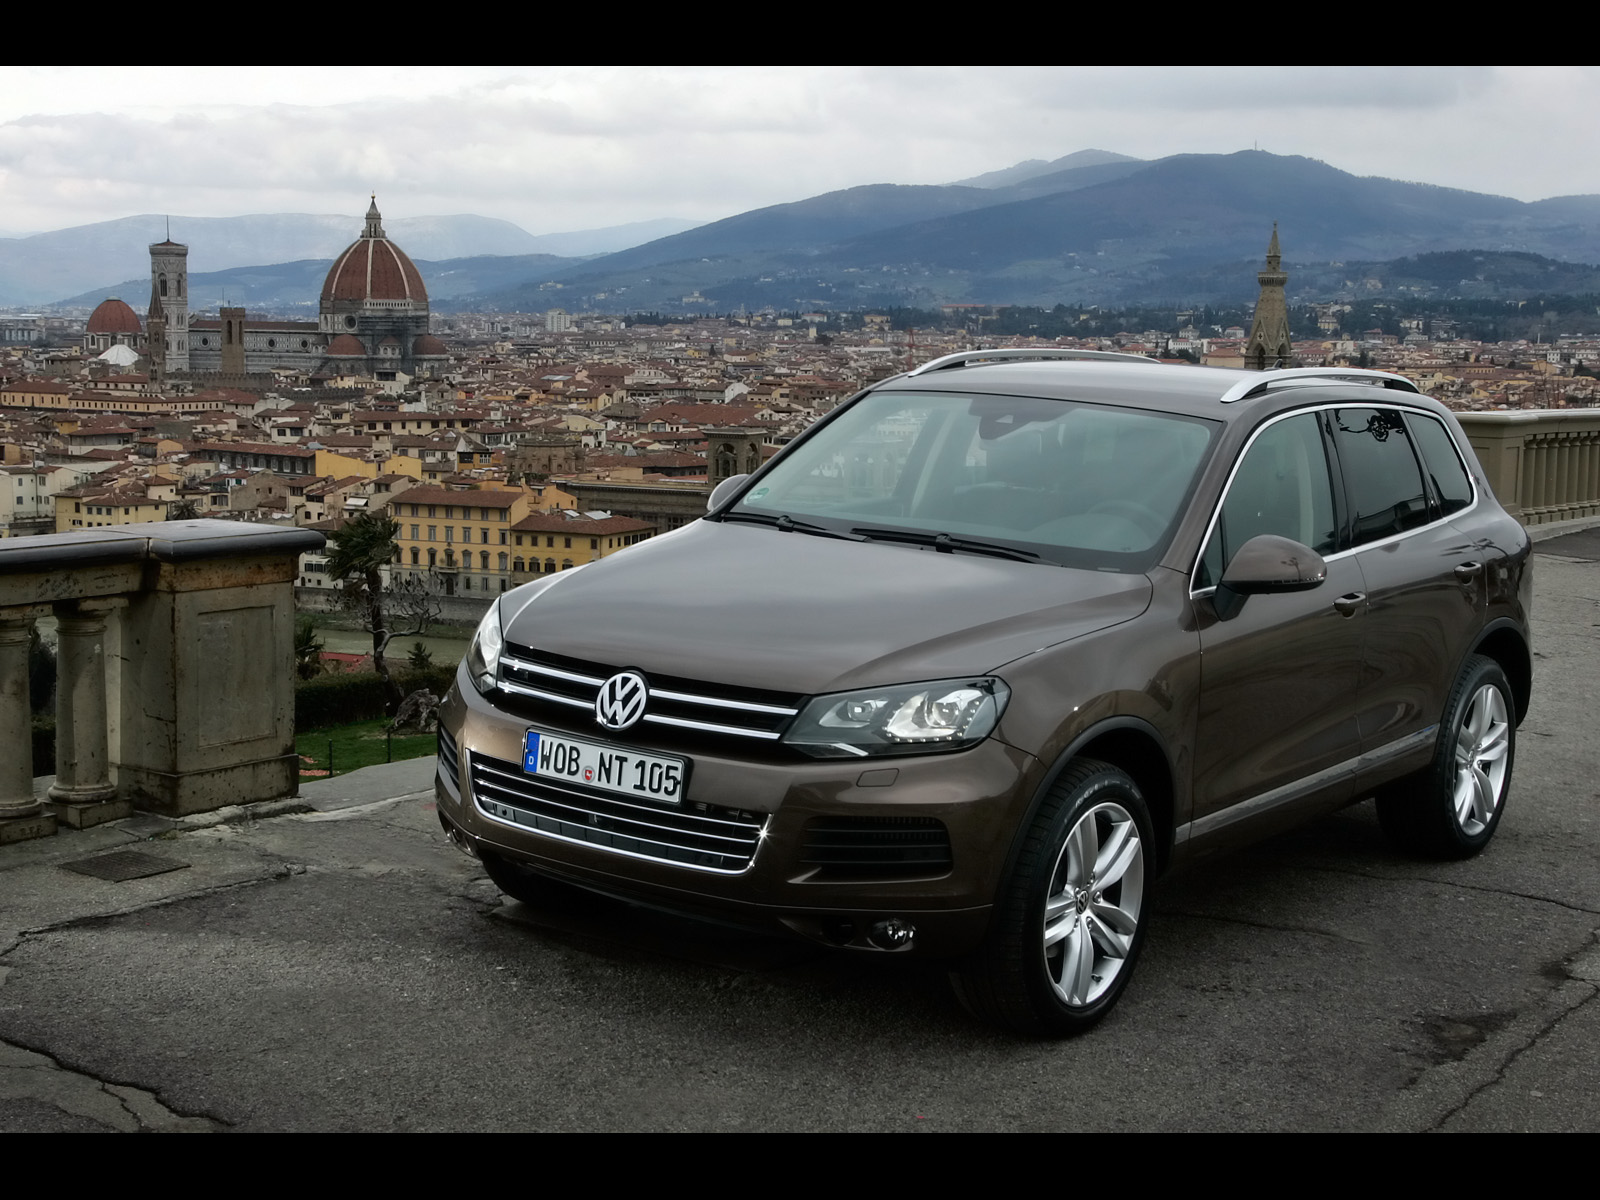 new vw touareg v6 tdi front angle wallpapers new vw. Black Bedroom Furniture Sets. Home Design Ideas